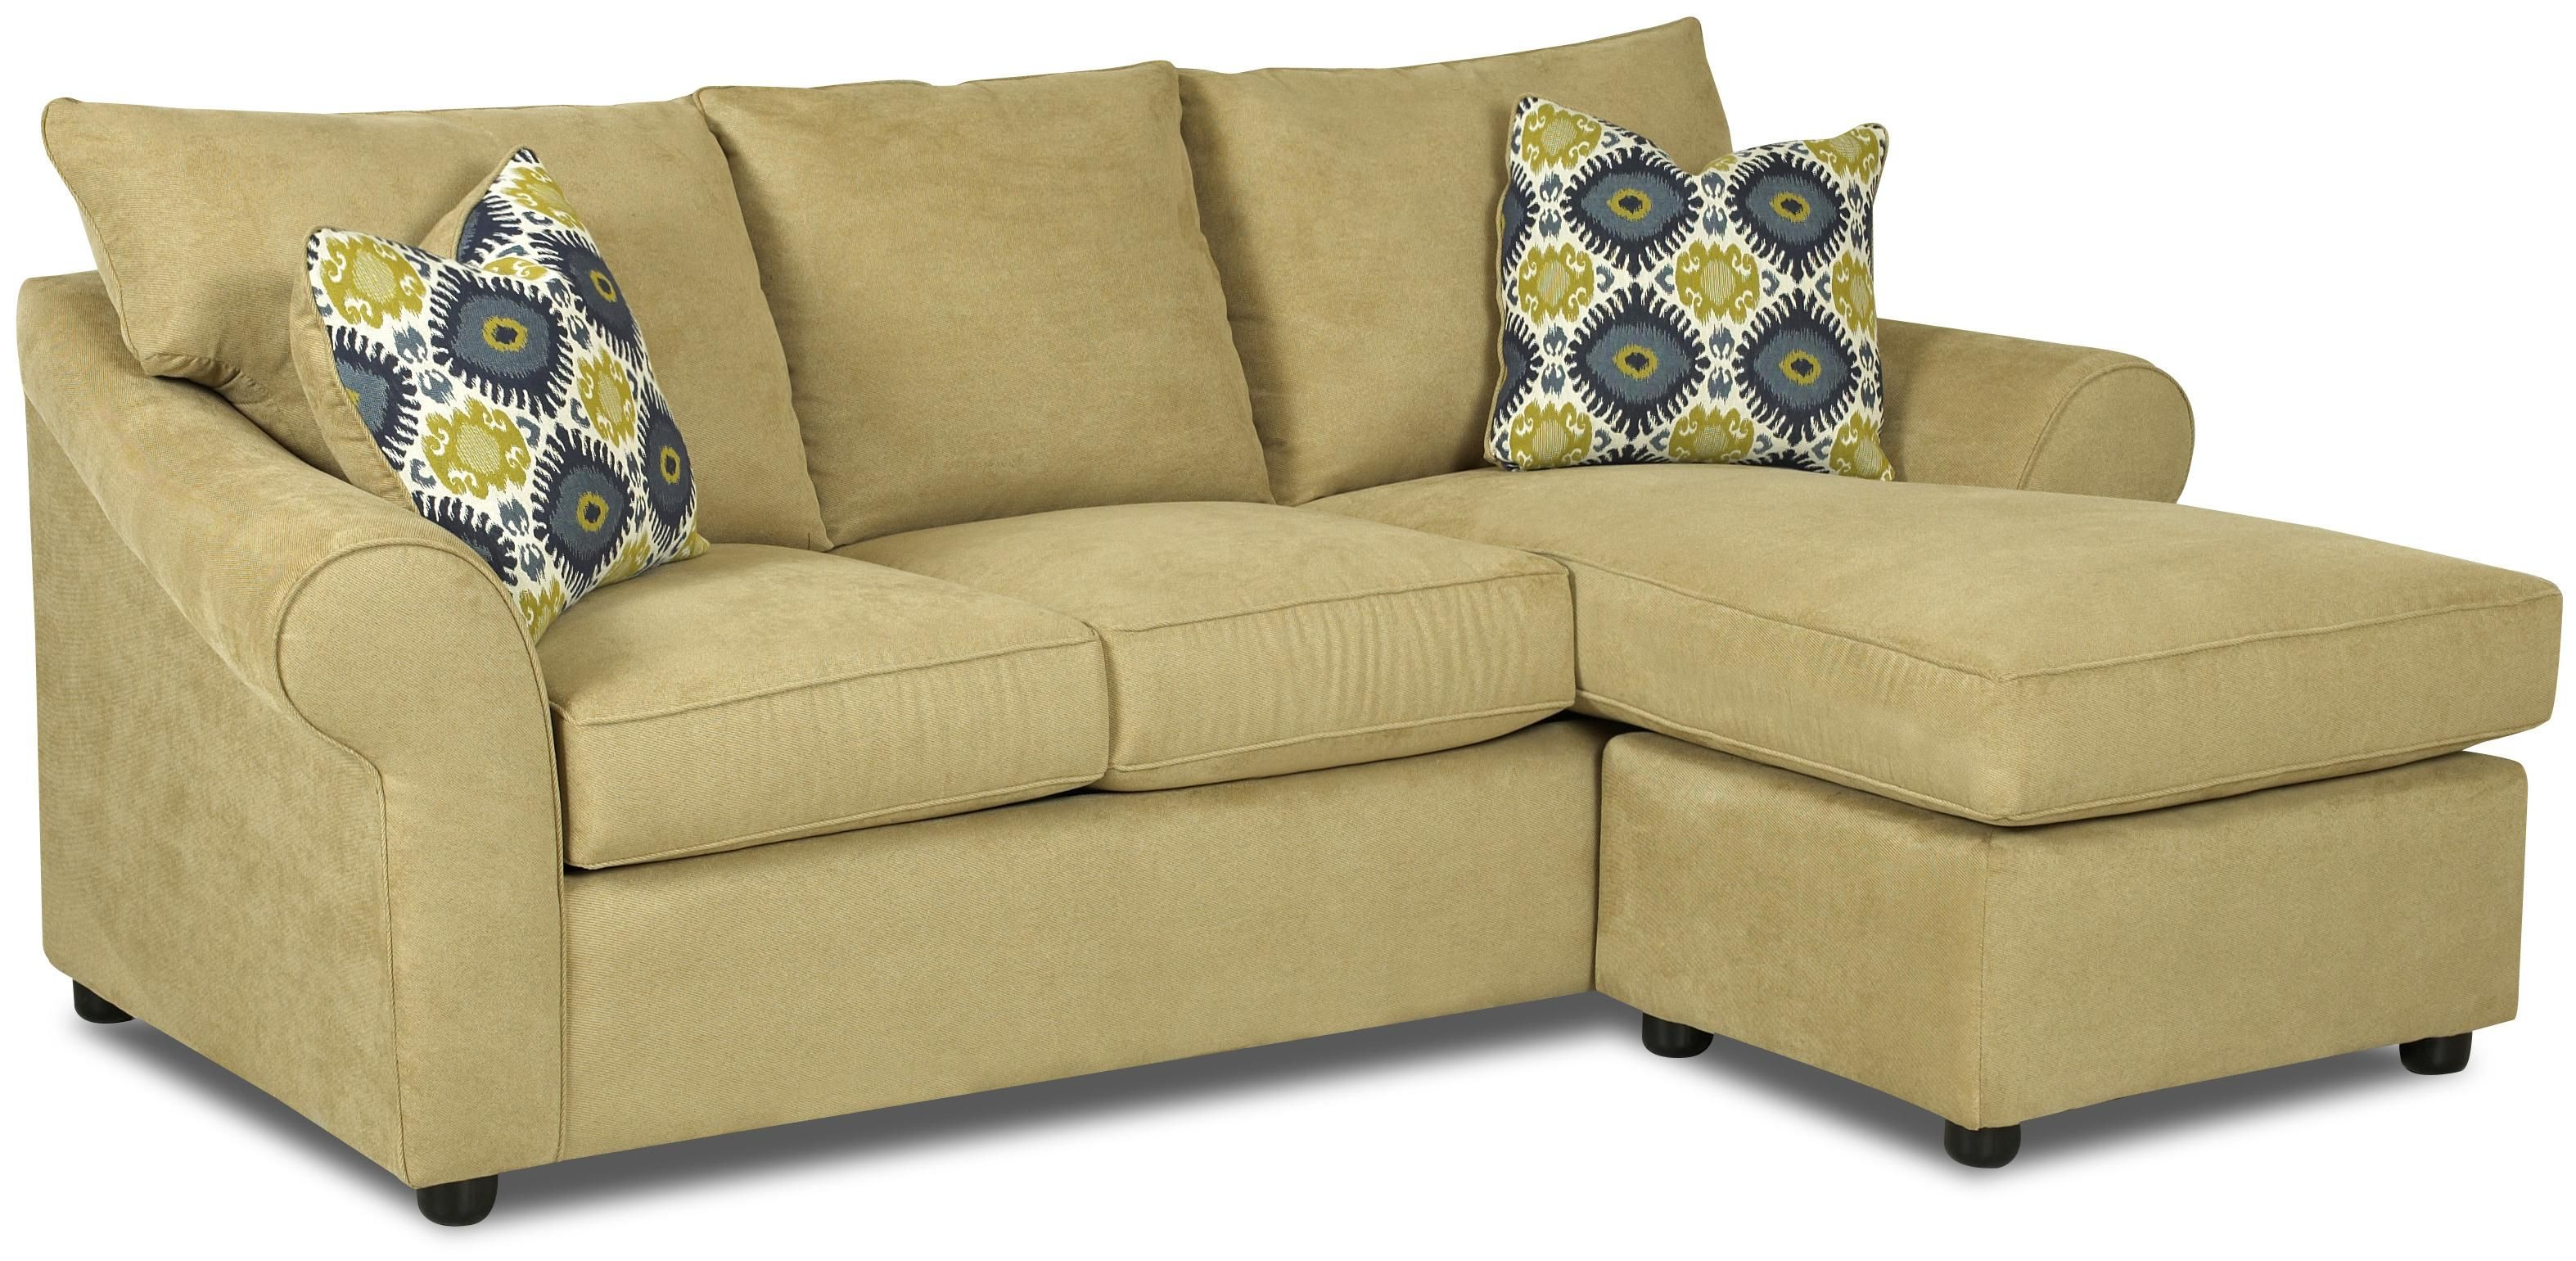 Klaussner Sofa And Loveseat